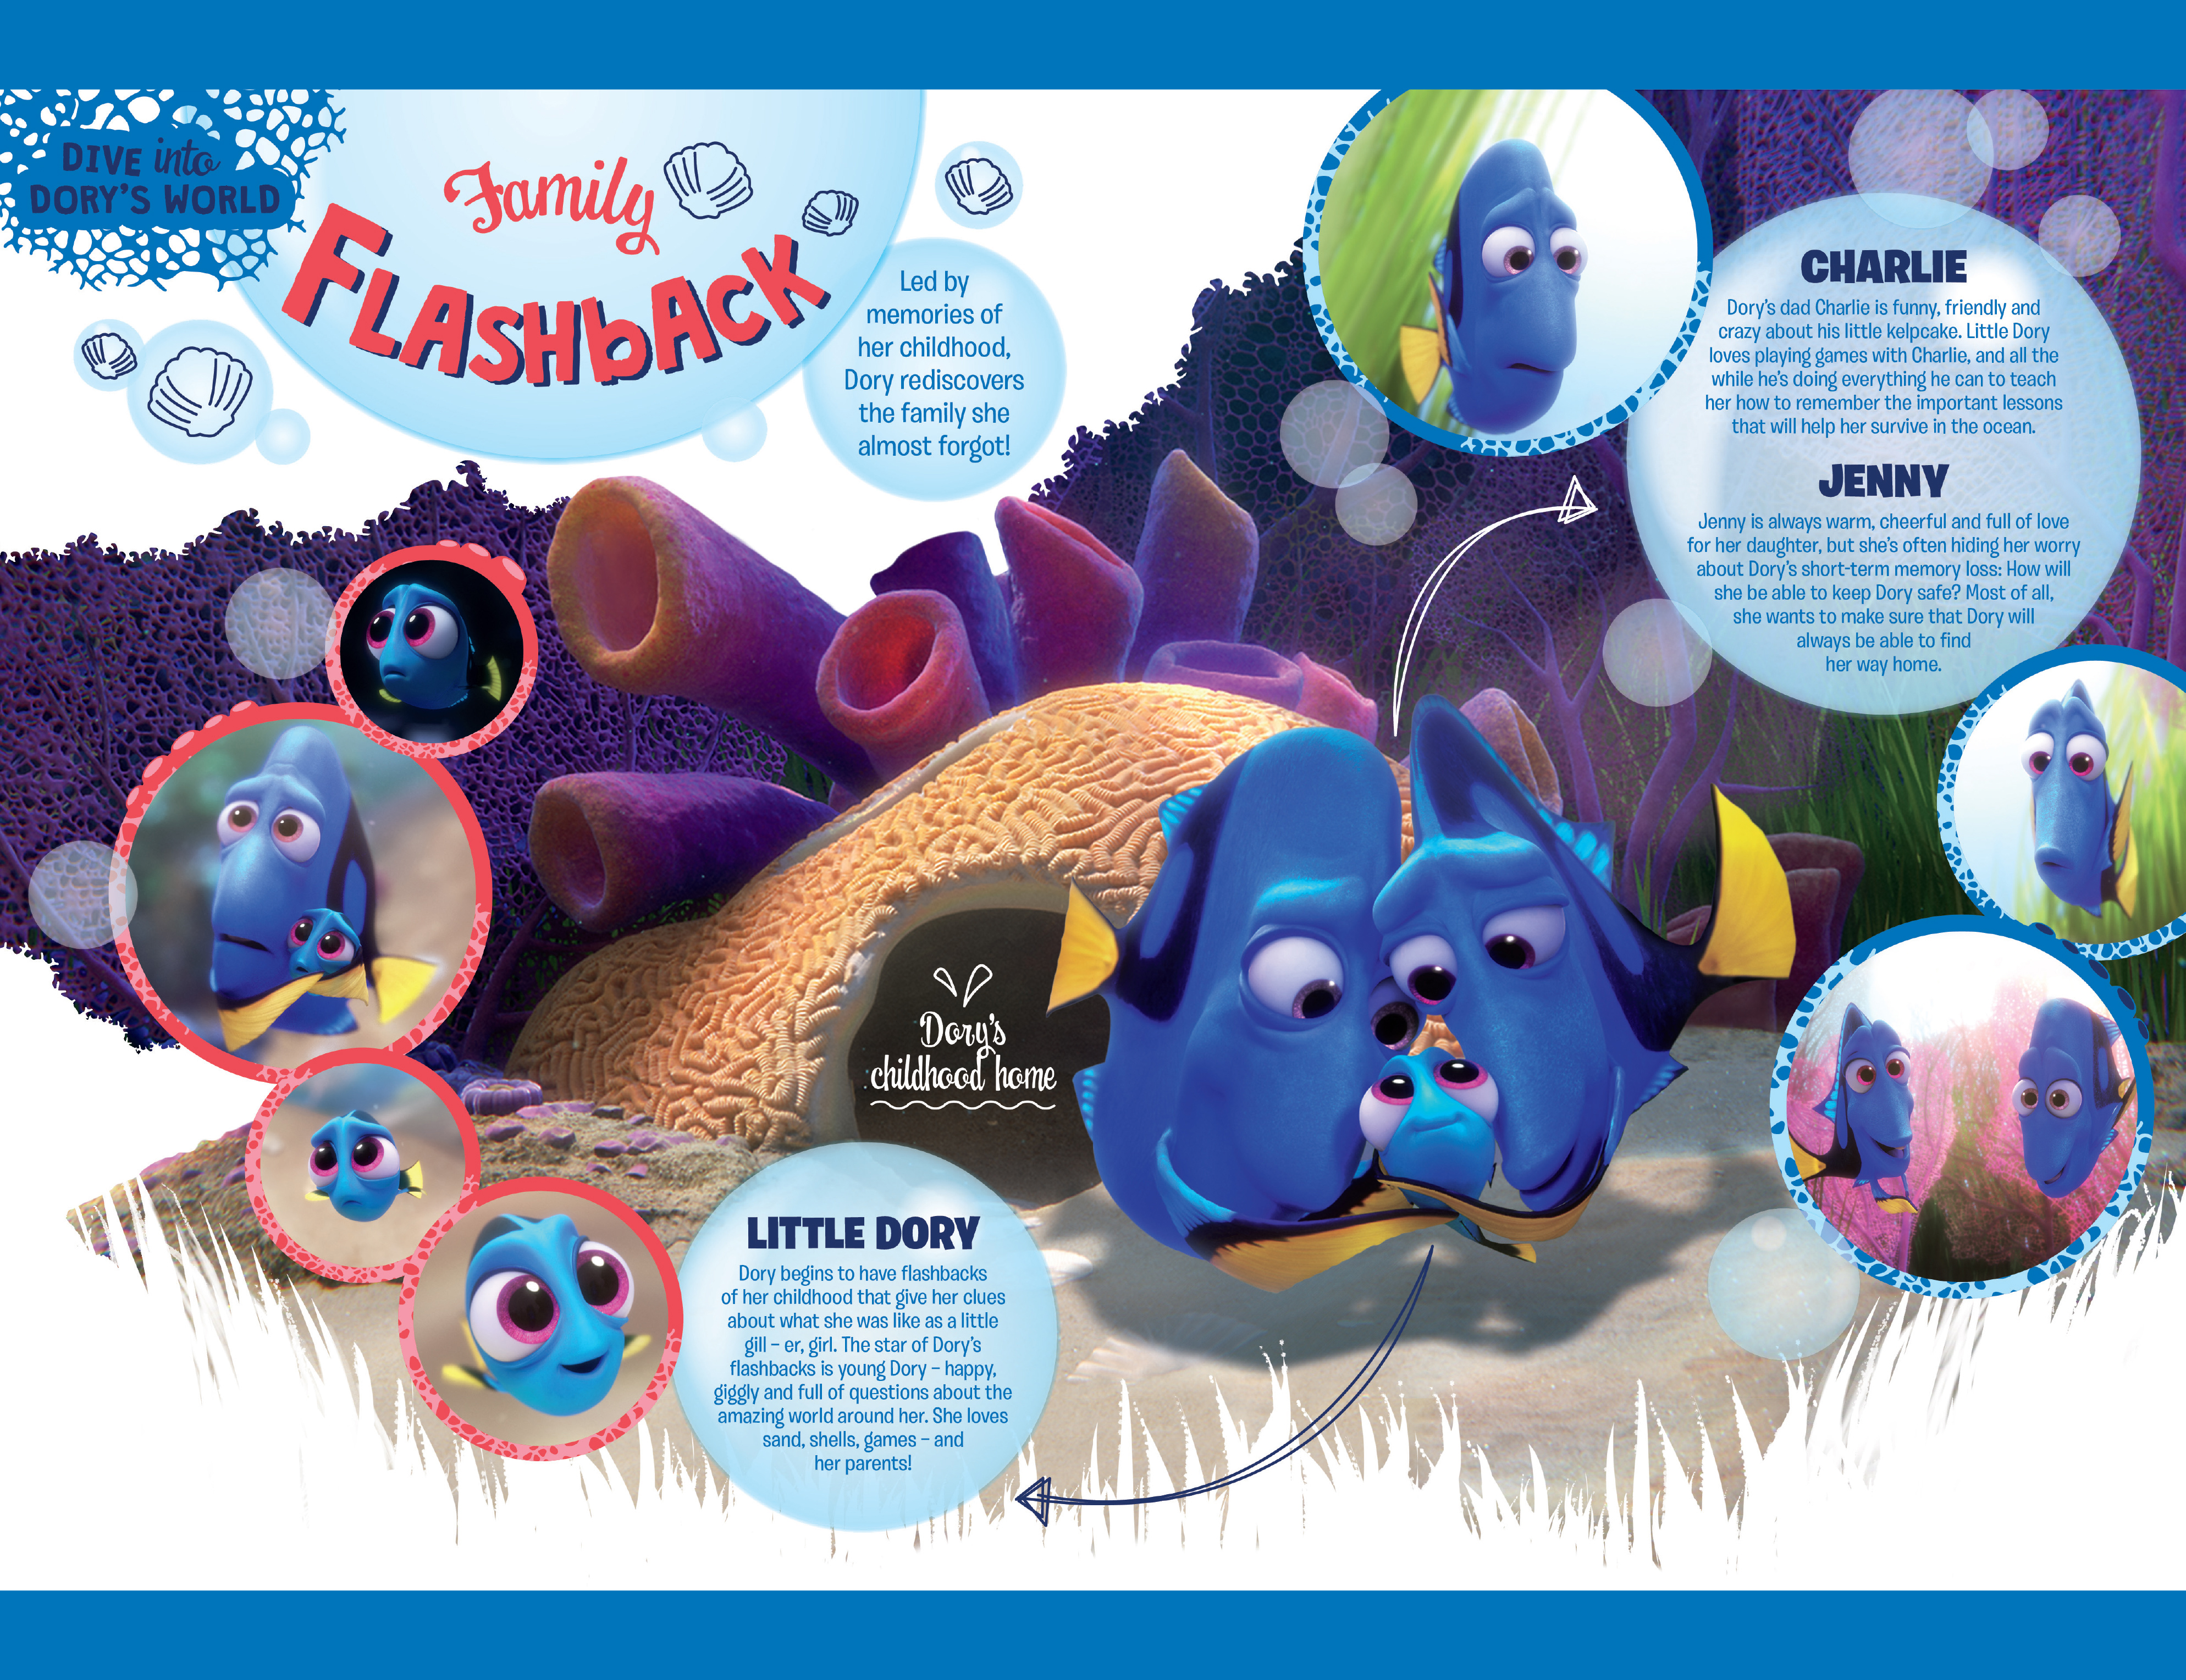 Read online Disney Pixar Finding Dory comic -  Issue #2 - 27